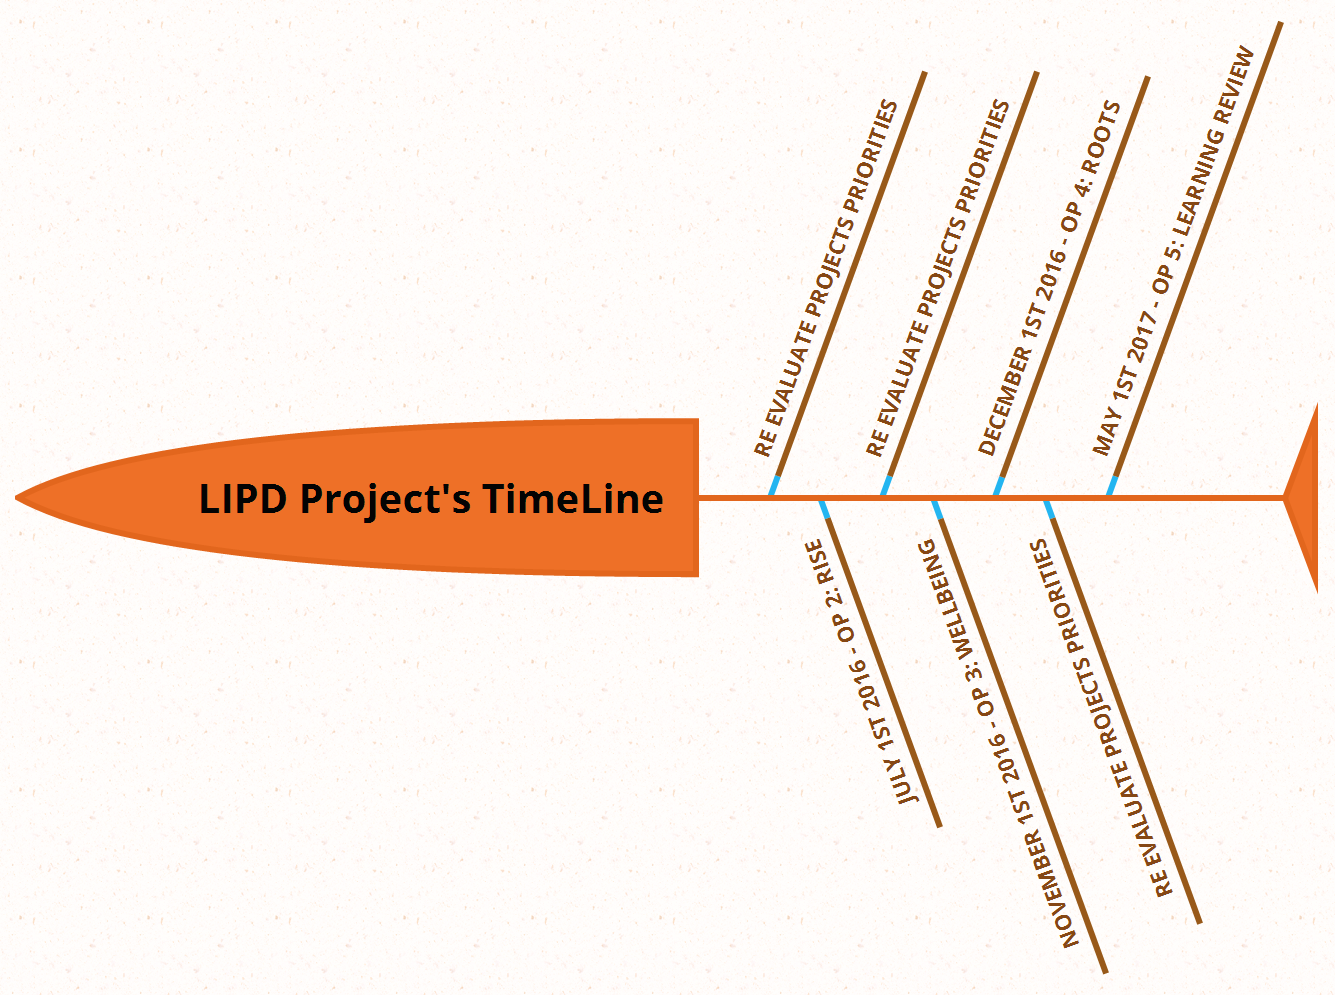 LIPD Project's TimeLine